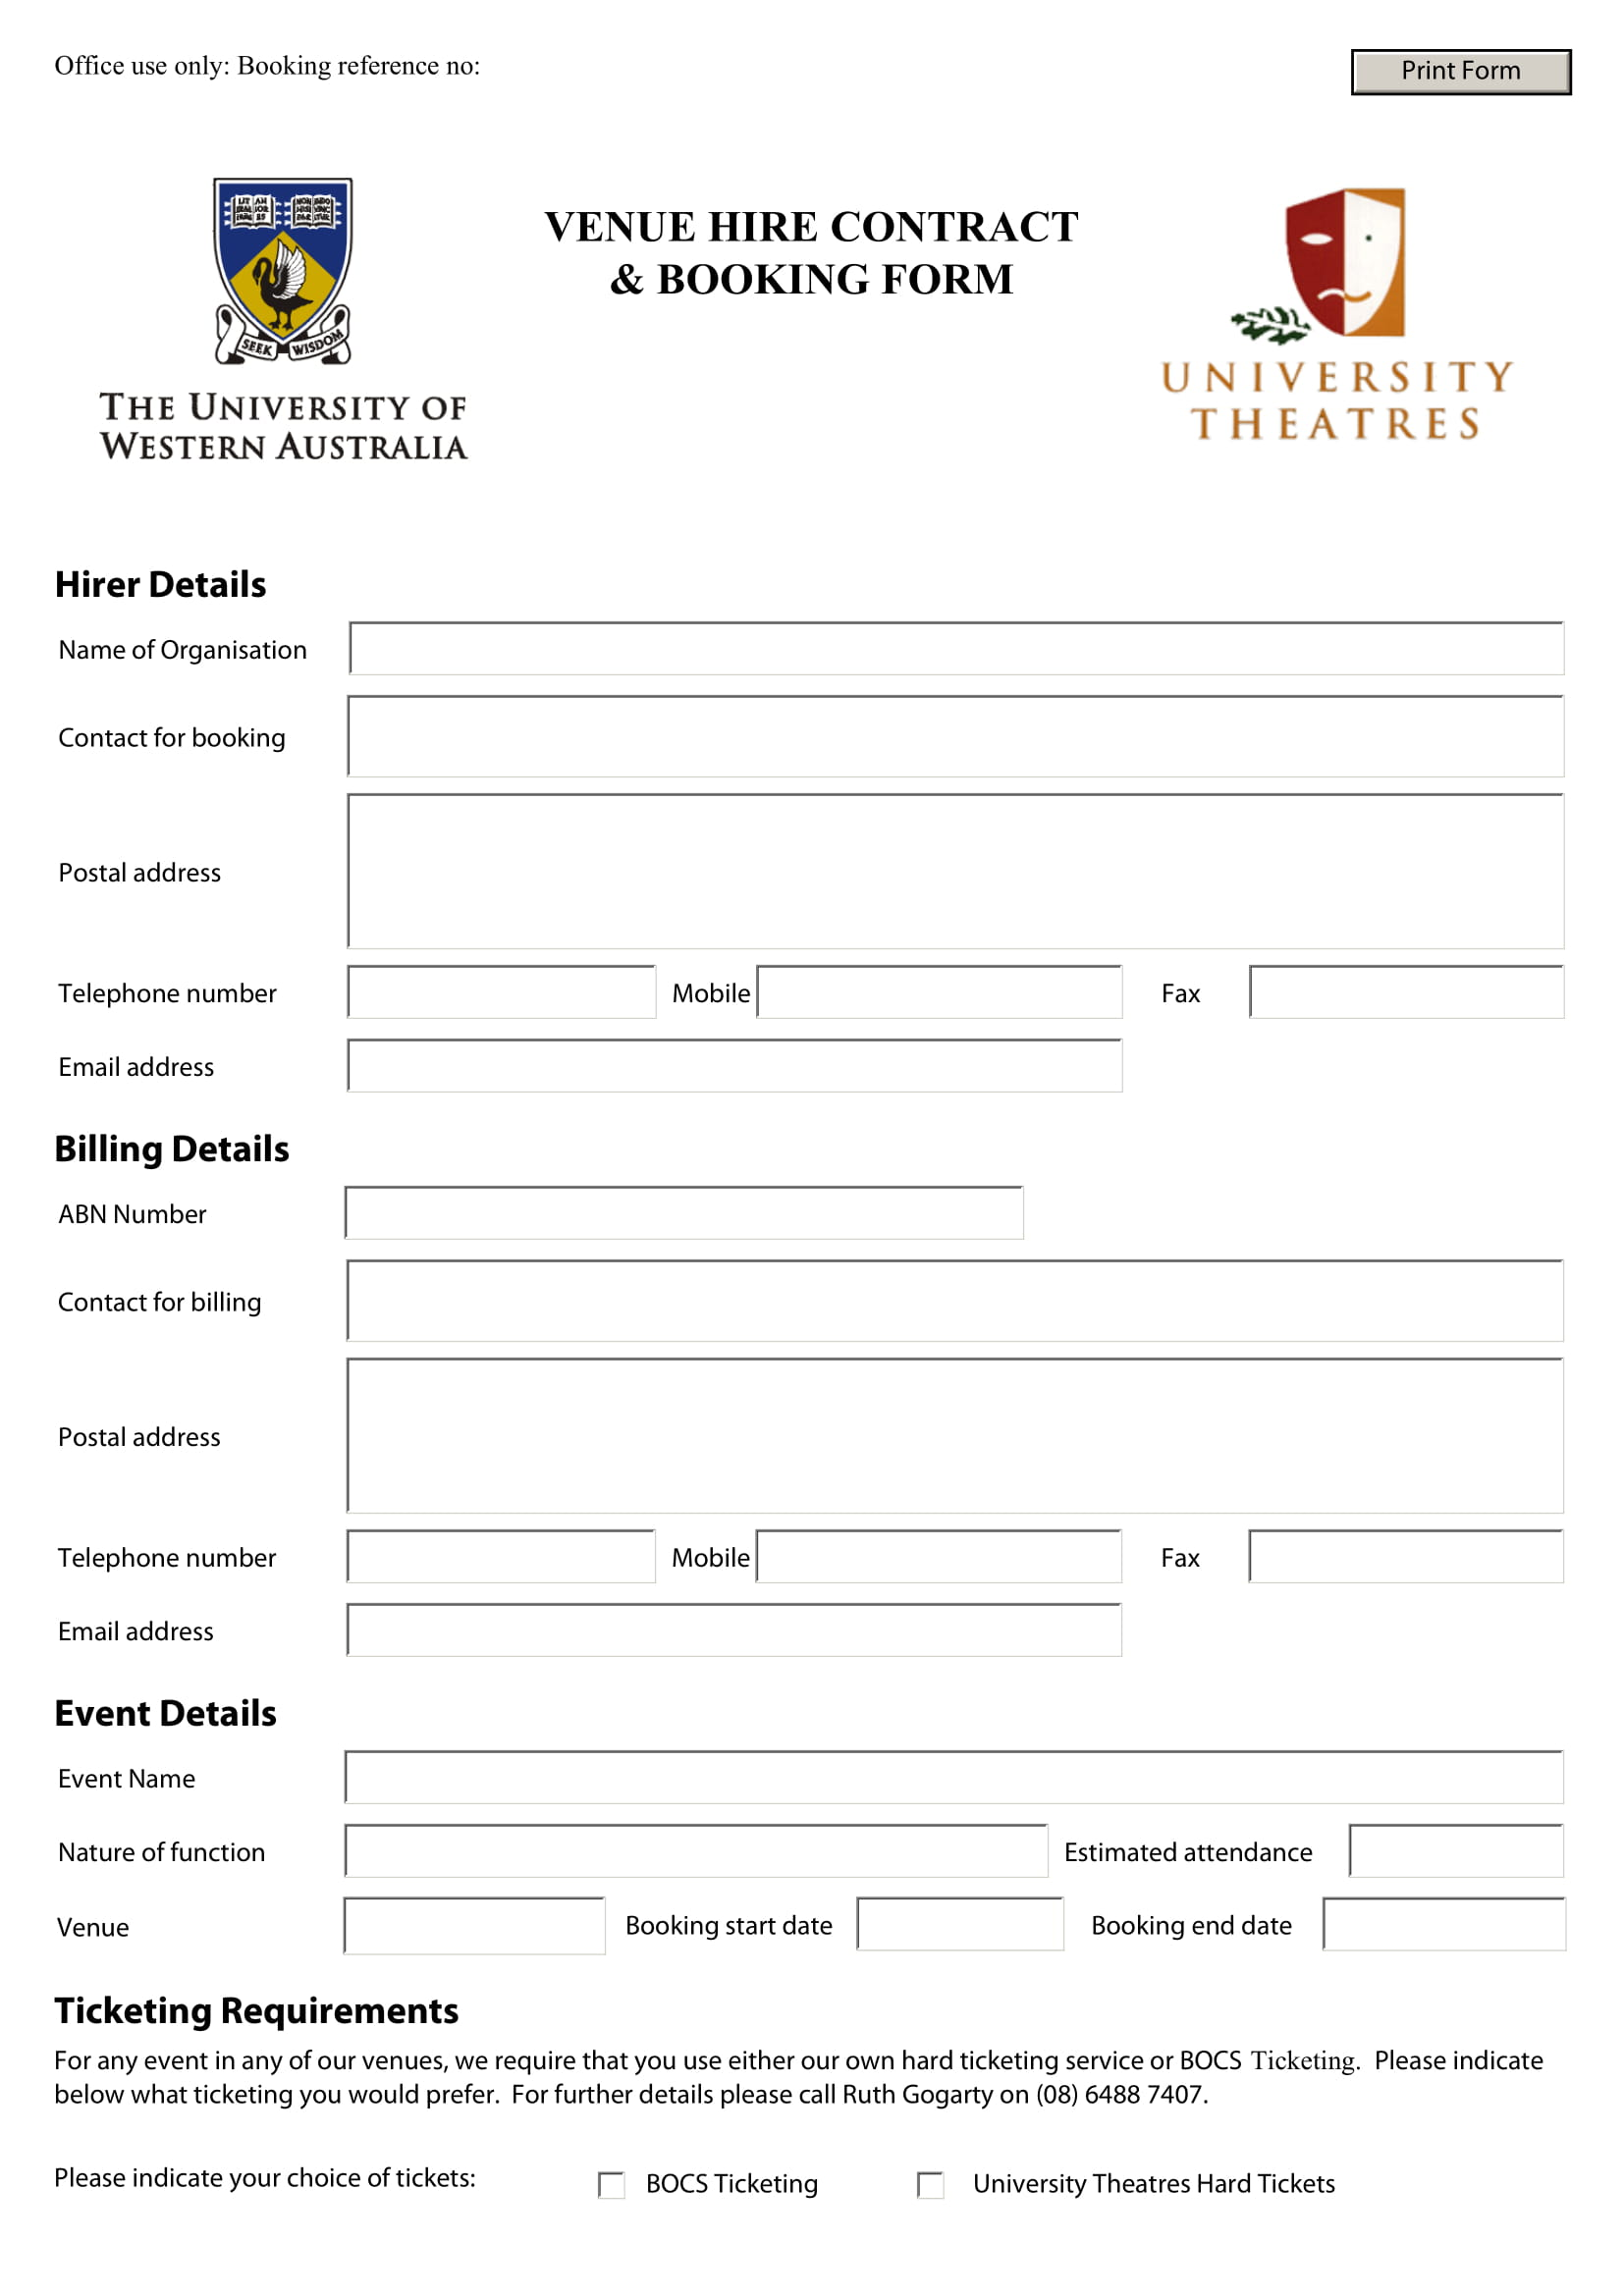 venue hire contract booking form 1